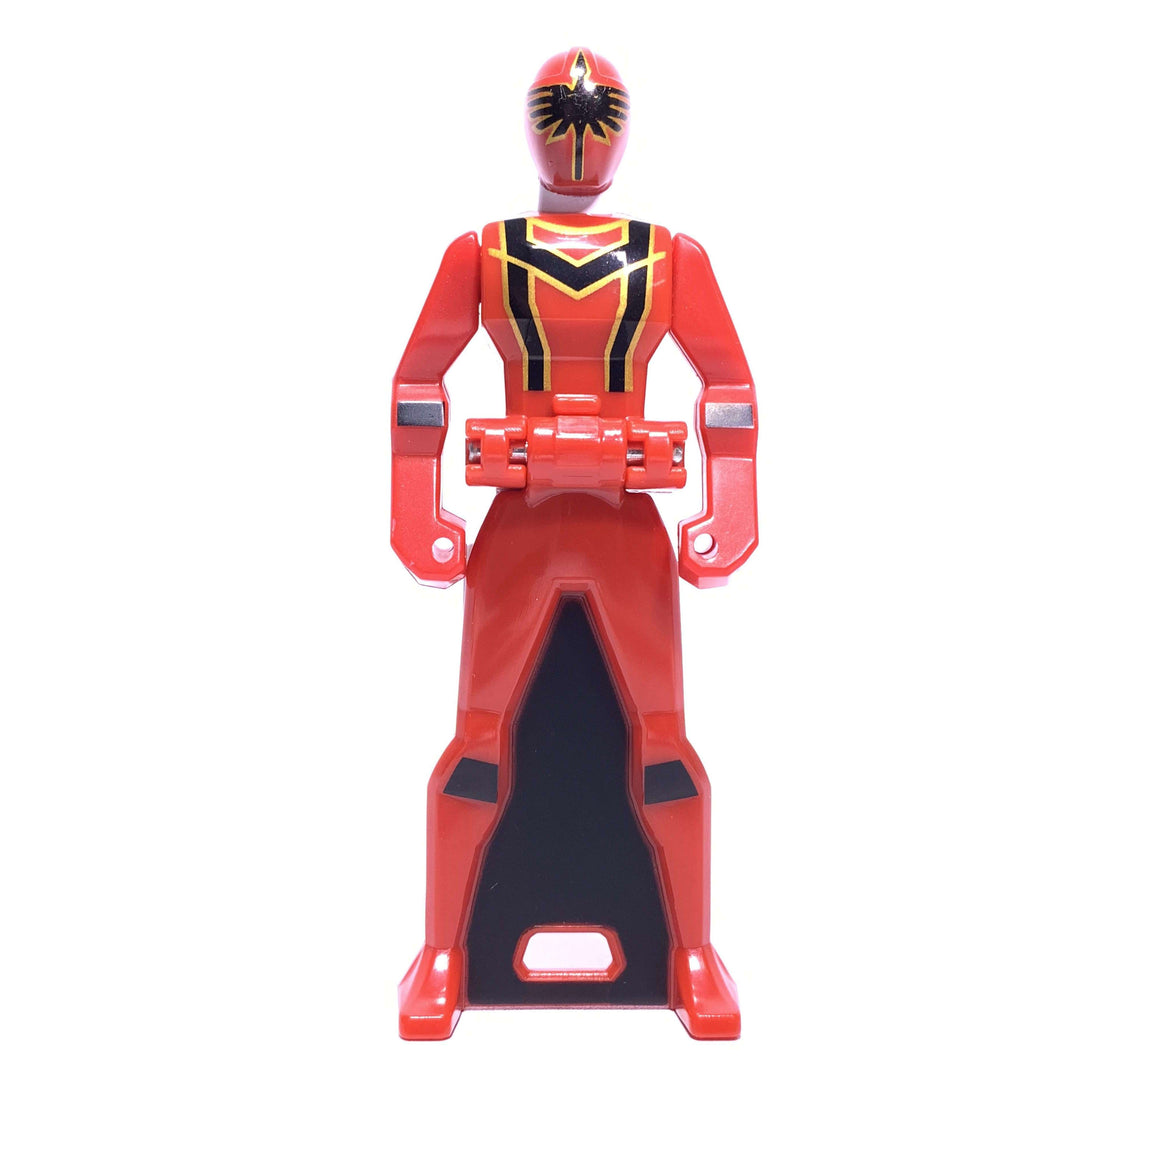 CSTOYS INTERNATIONAL:[LOOSE] Ranger Key: 2005 Magiranger: Magi Red